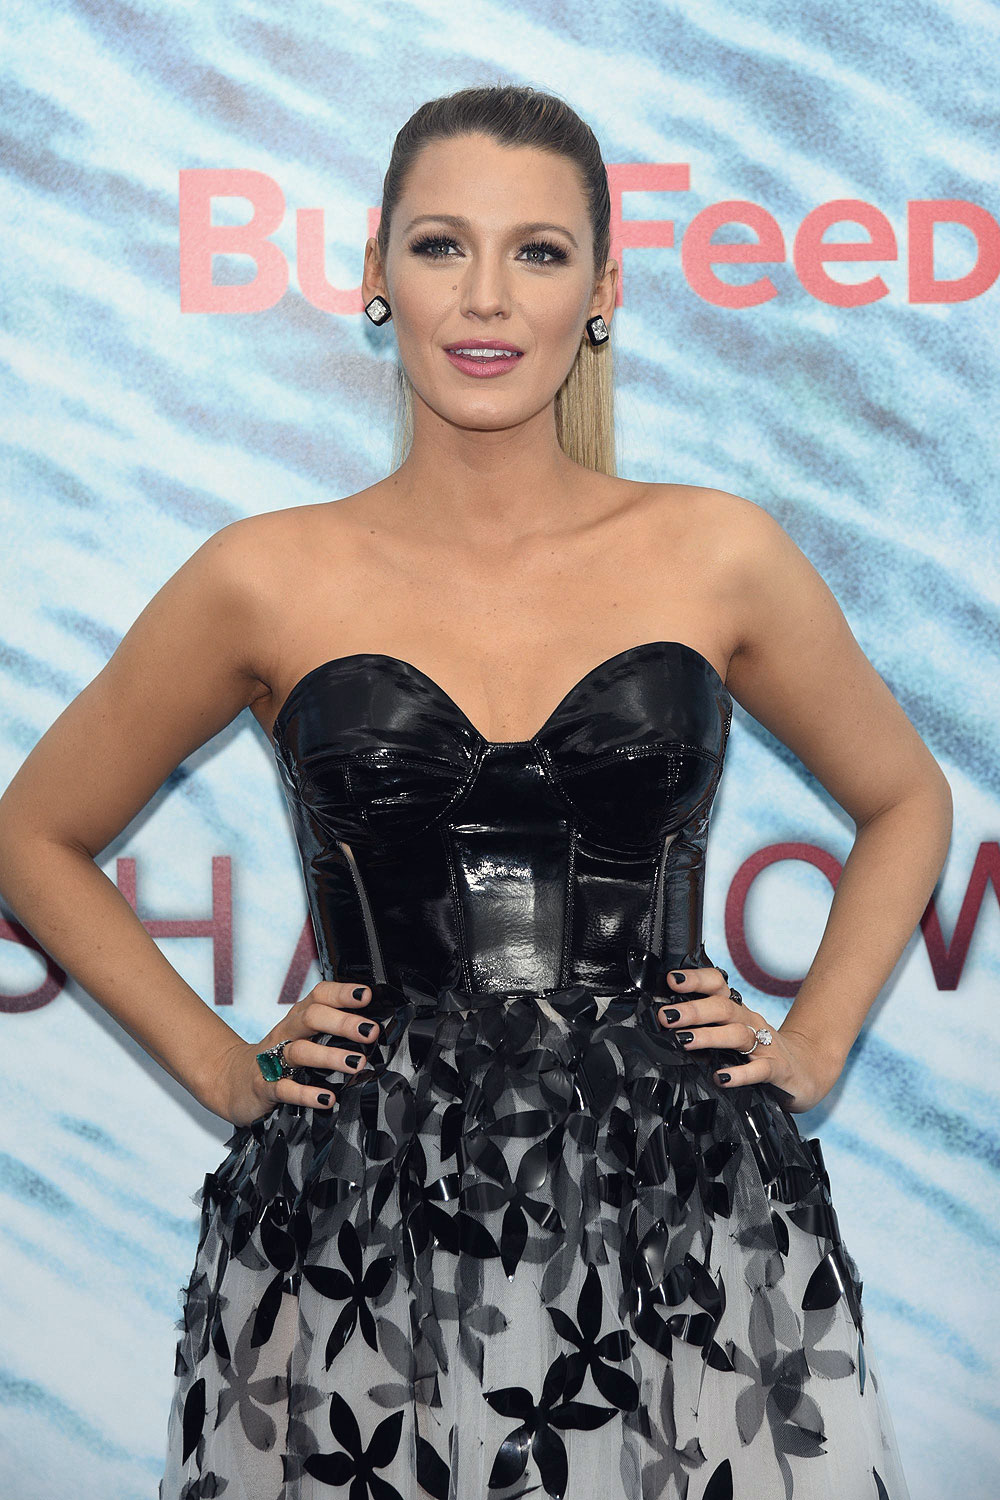 Blake Lively attends The Shallows Premiere